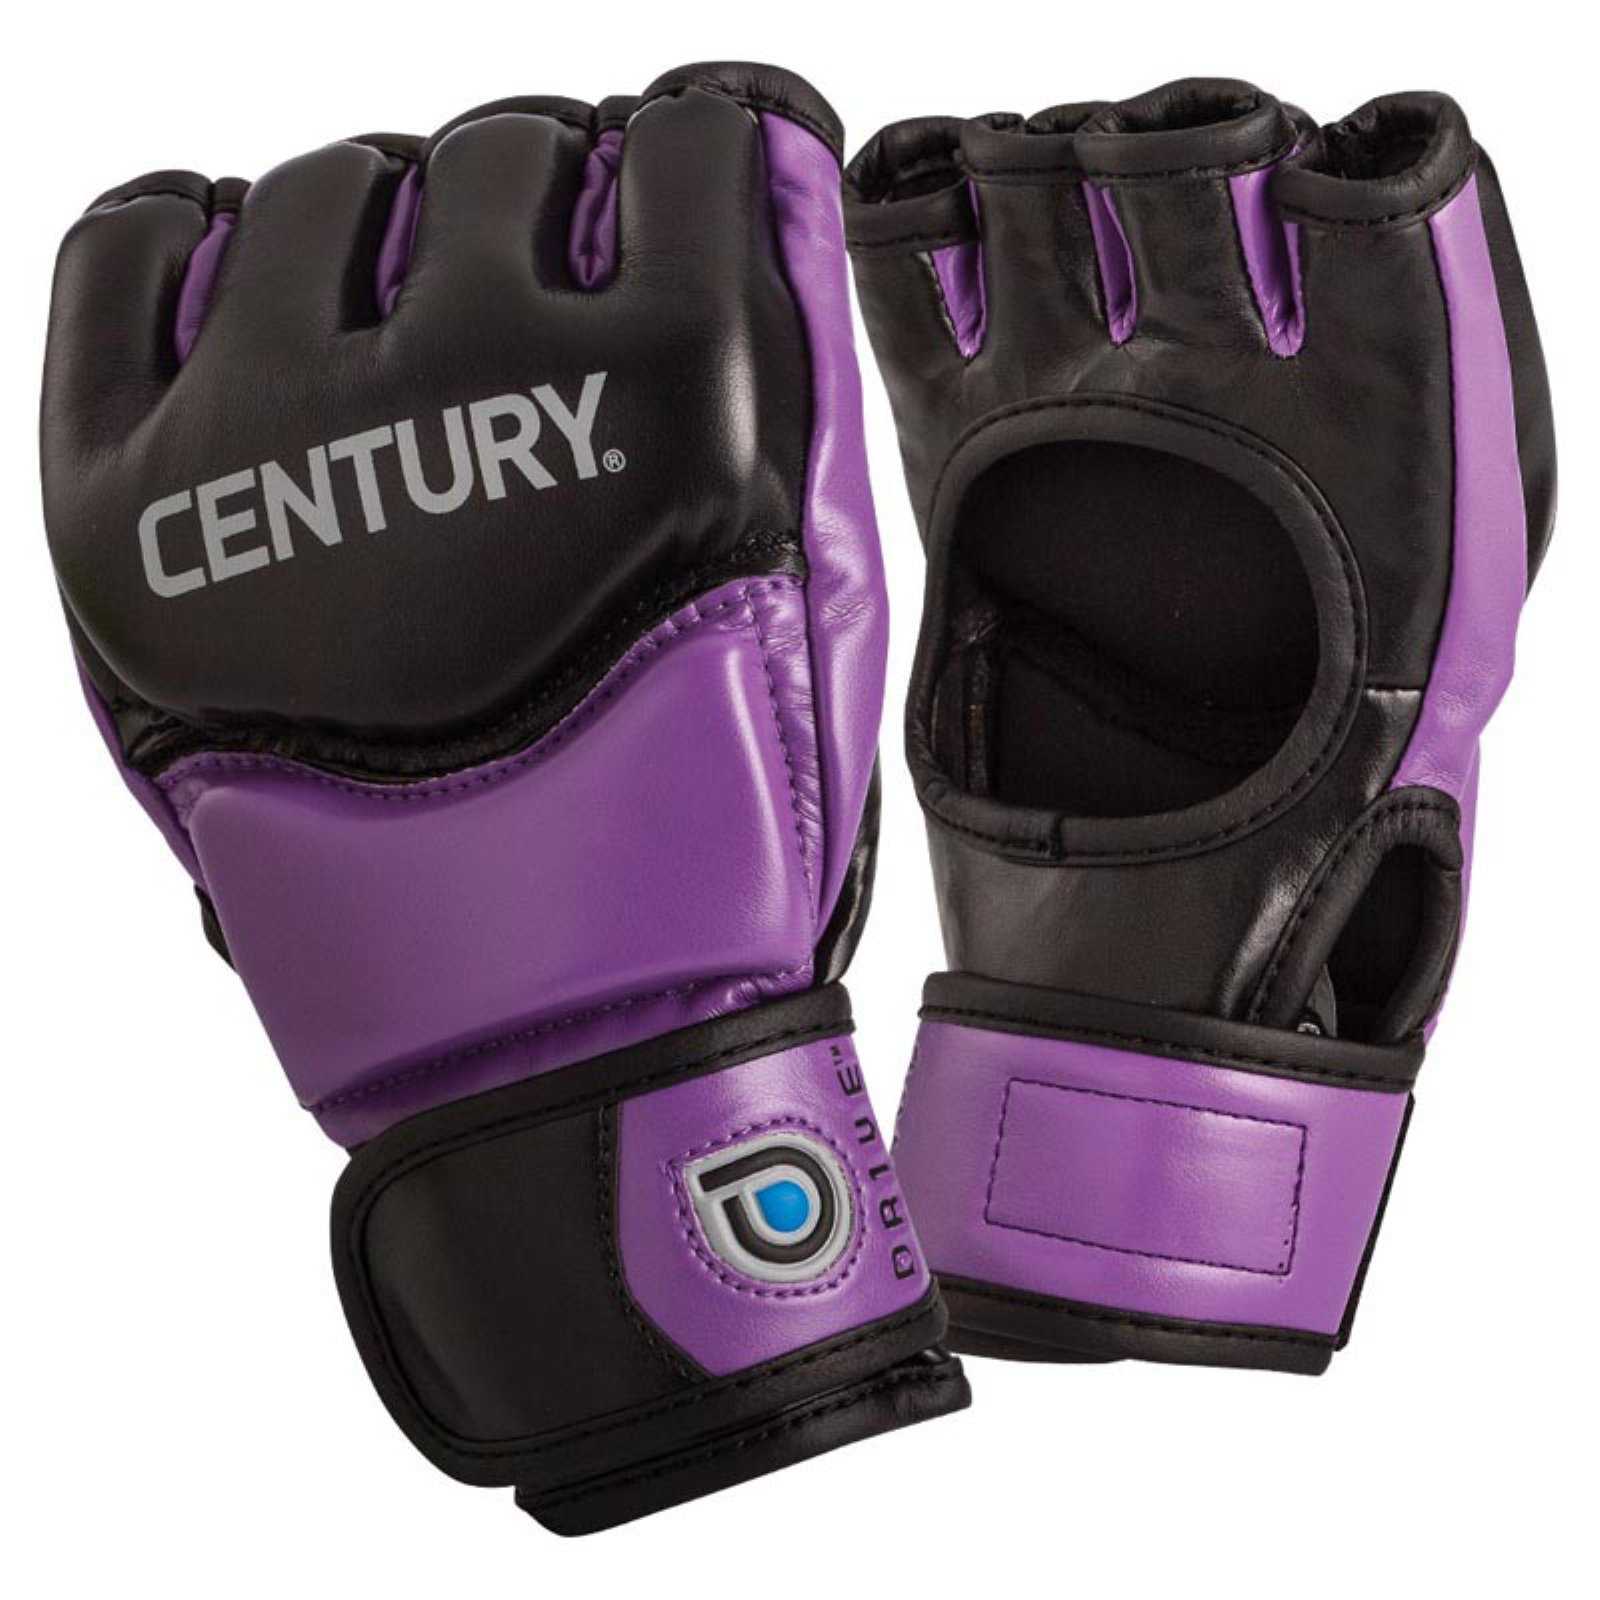 Century Drive Womens Fight Glove by Century